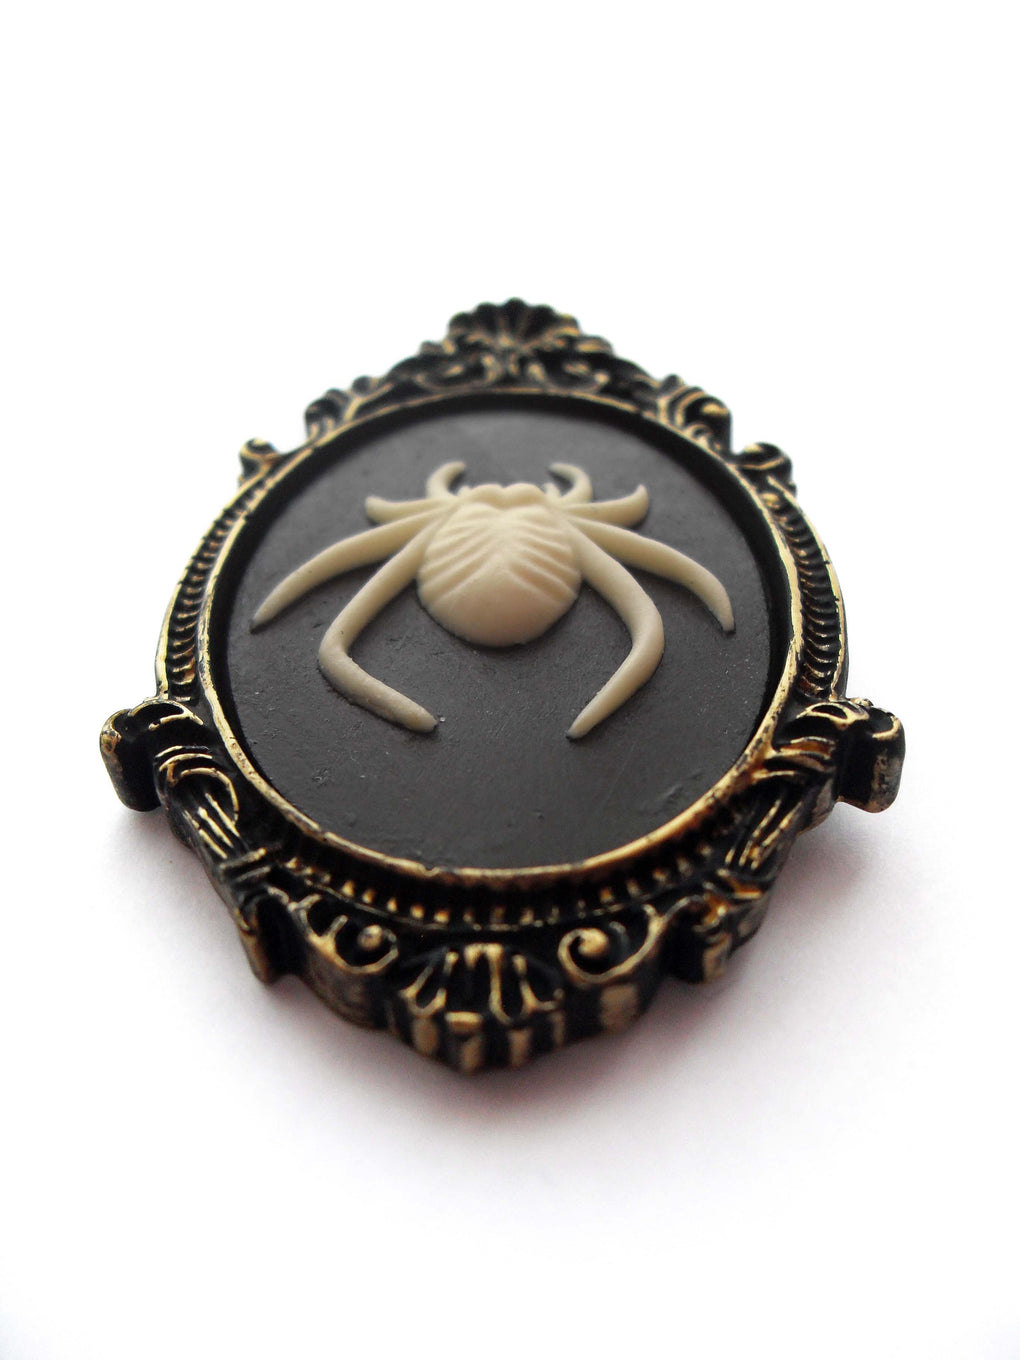 SPIDER CAMEO BROOCH